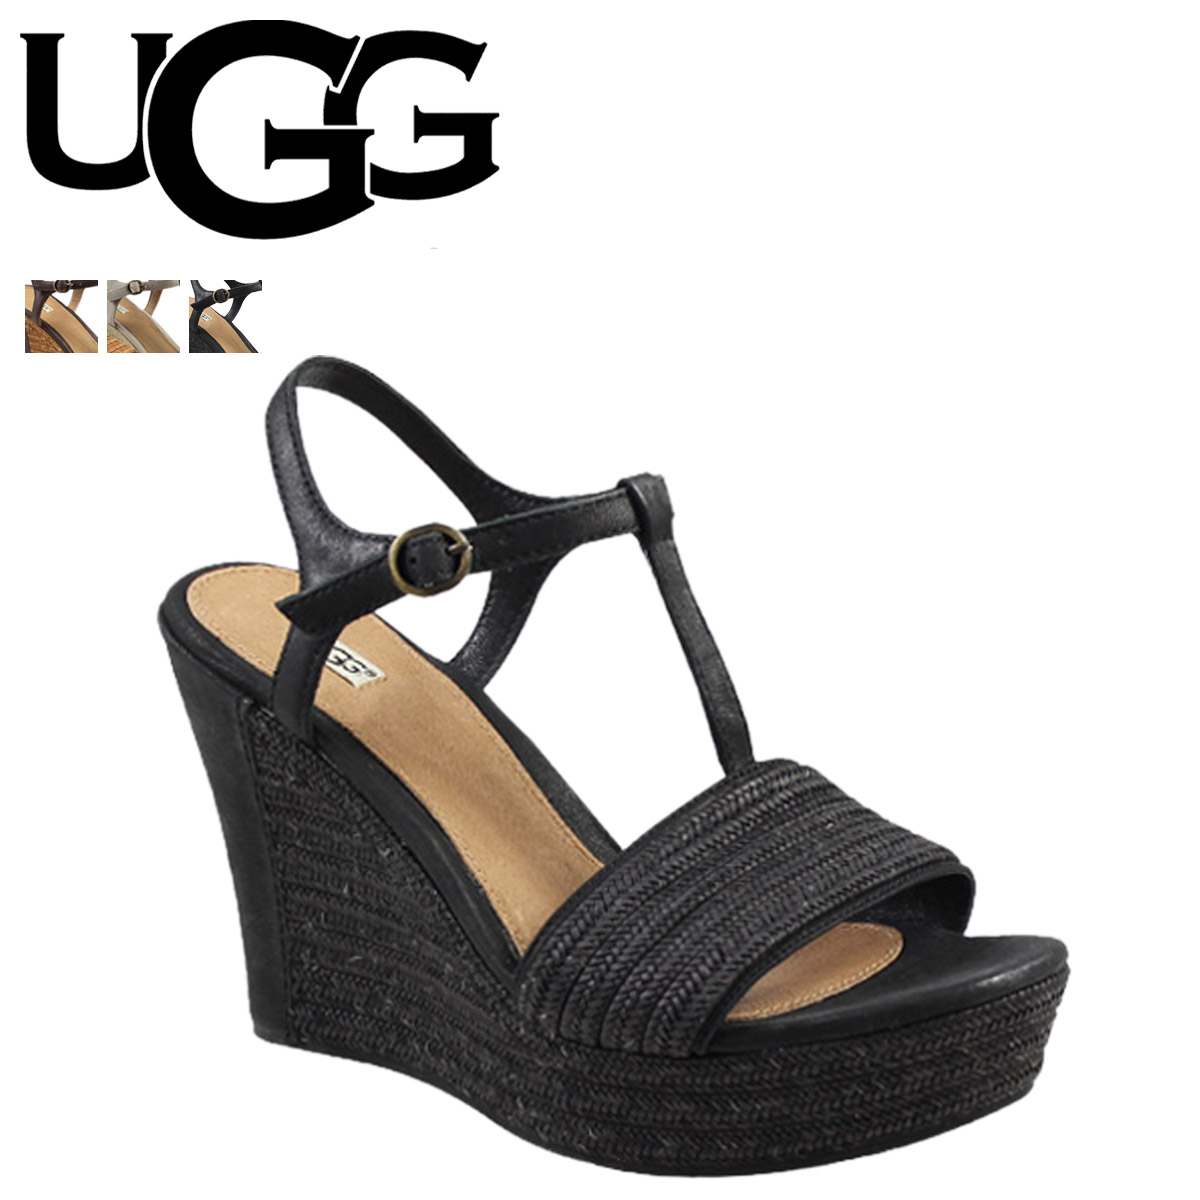 UGG UGG Fiche Sandals wedge Sandals WOMENS FITCHIE 1006844 leather jute ladies